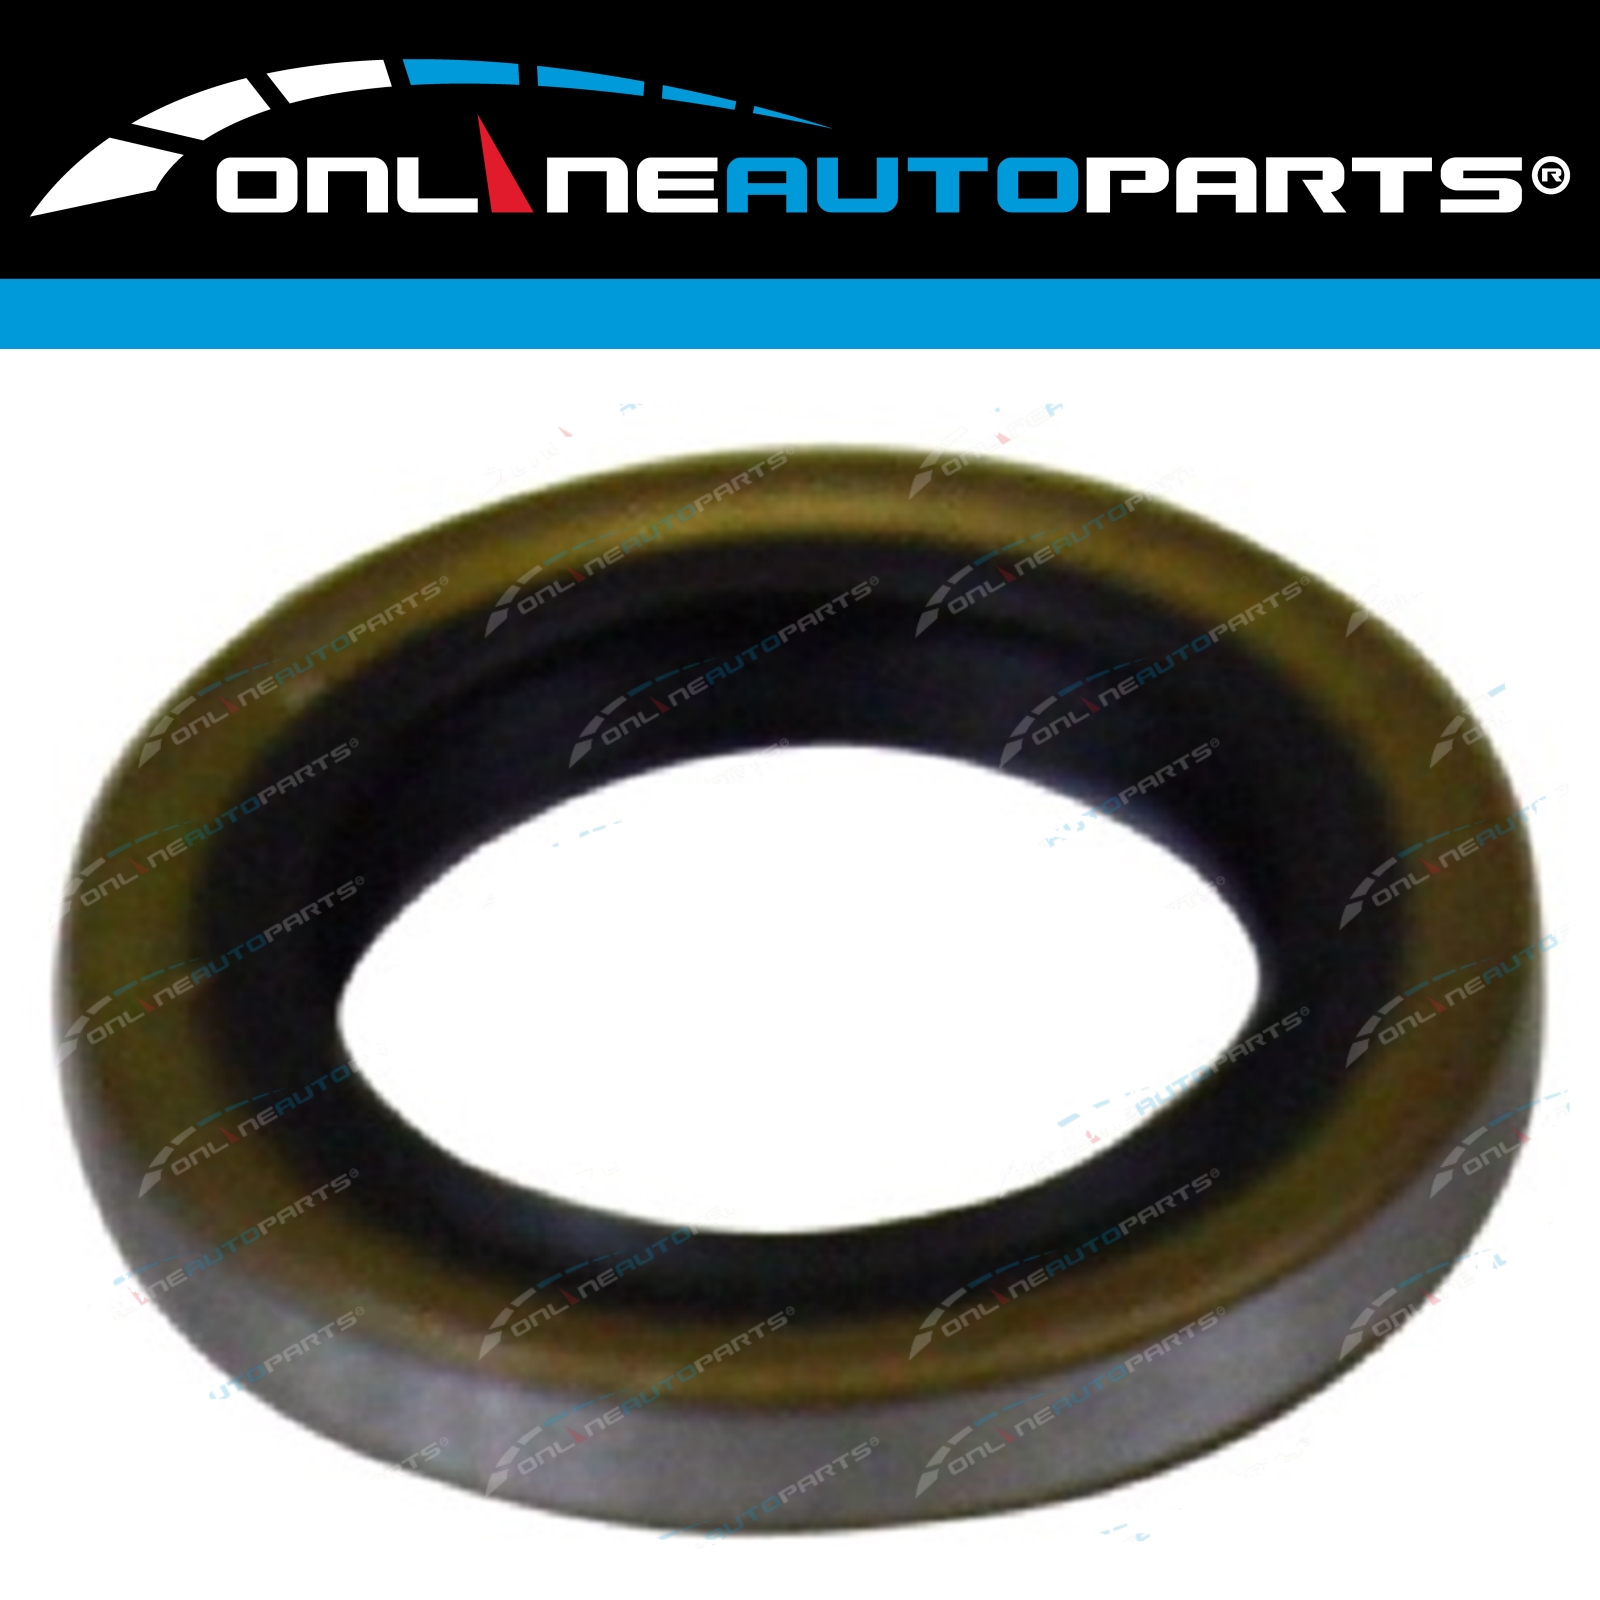 Rear Diff Axle Oil Seal Suits Toyota Hilux Ute 2x4 4x4 4wd